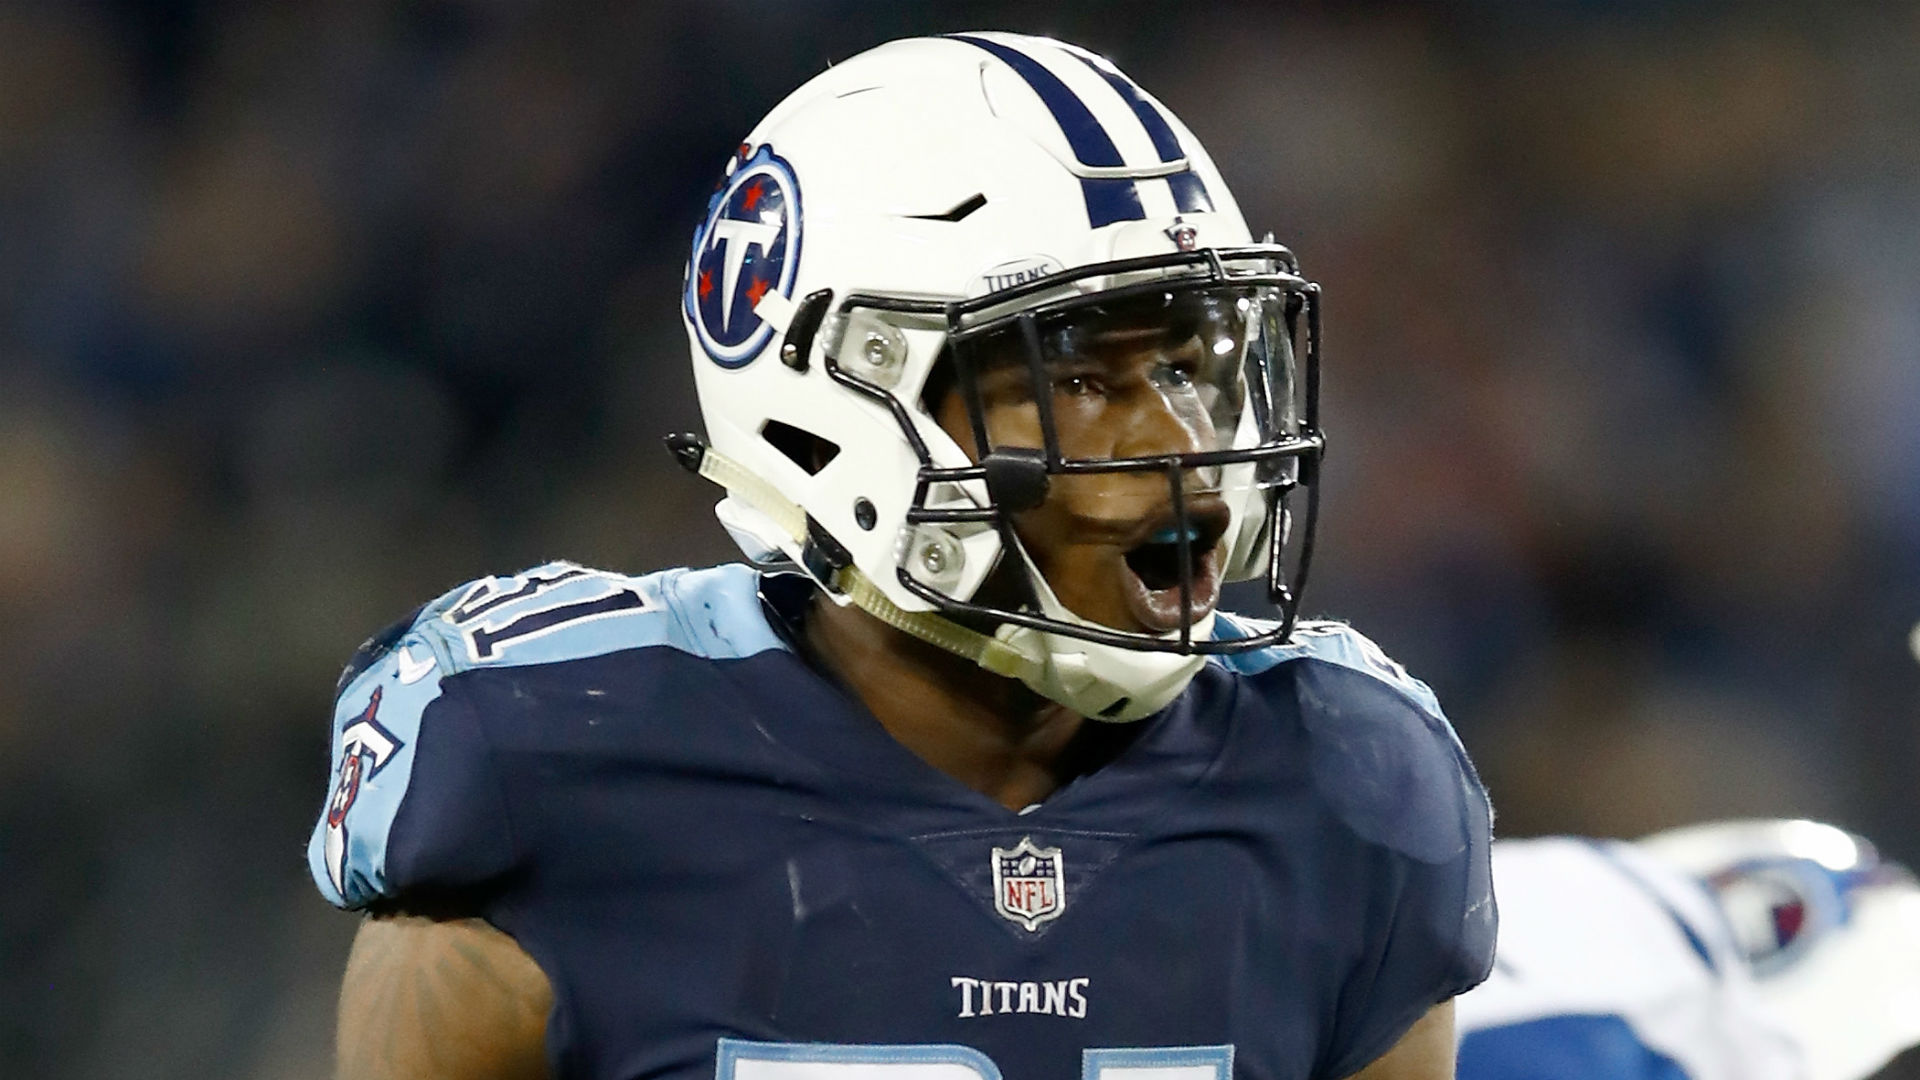 Titans' Kevin Byard said Deion Sanders' slight will motivate him